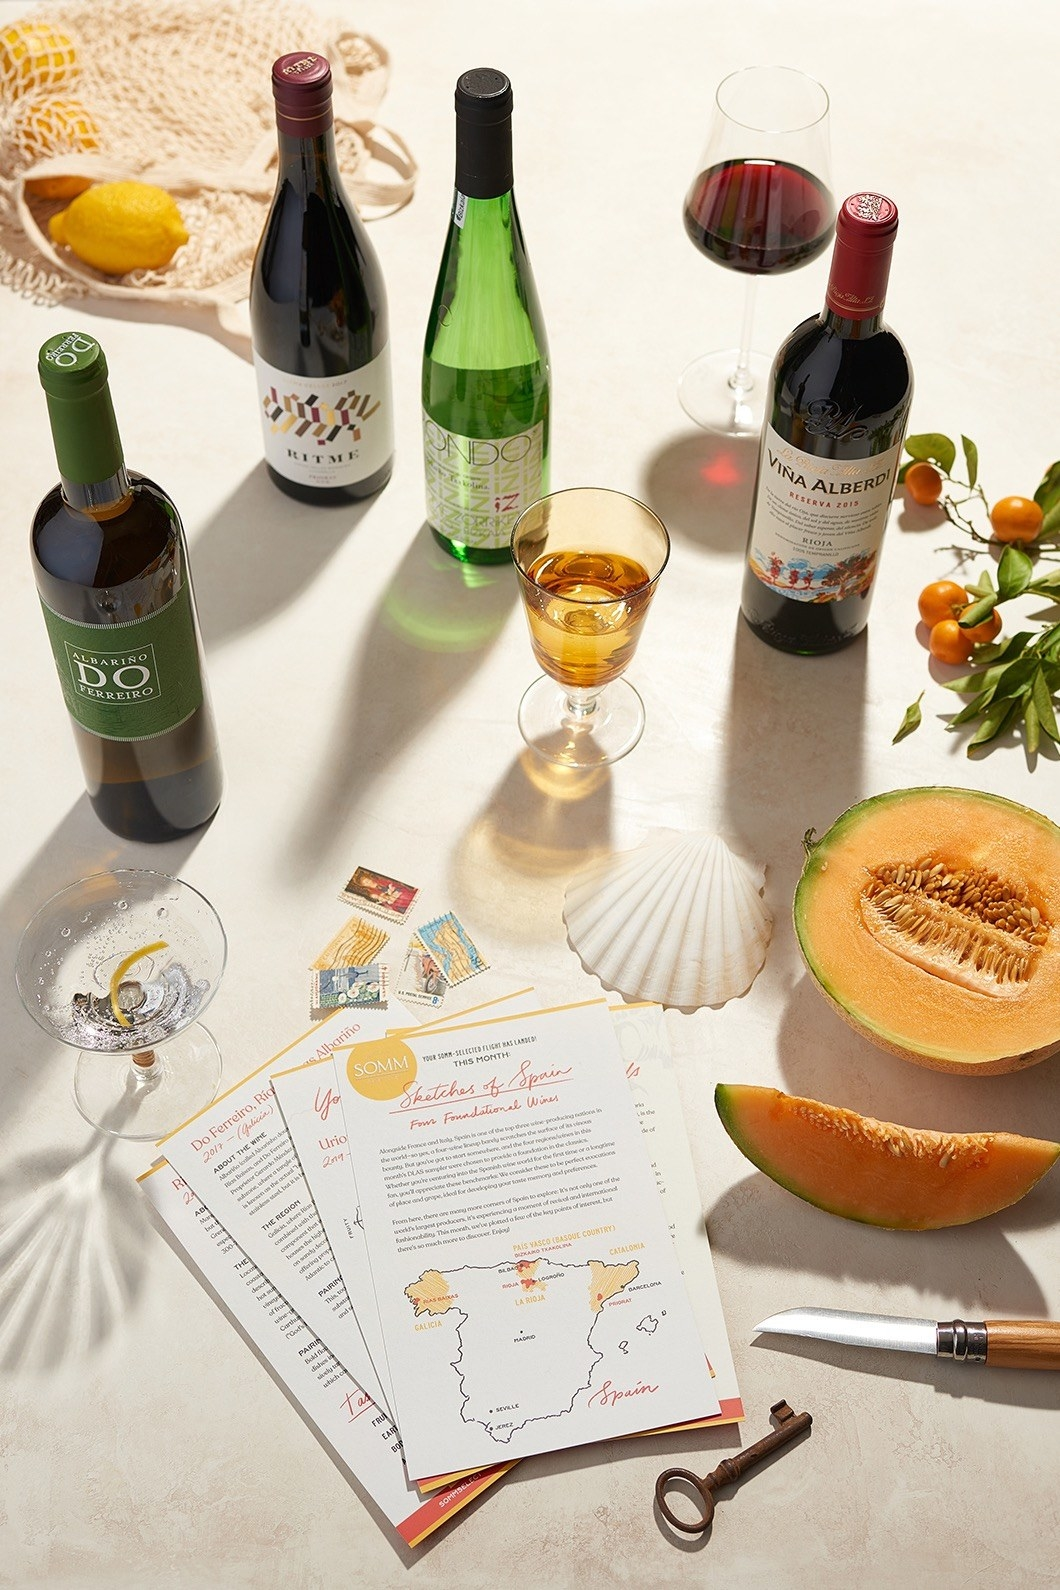 photo of wine bottles and information cards